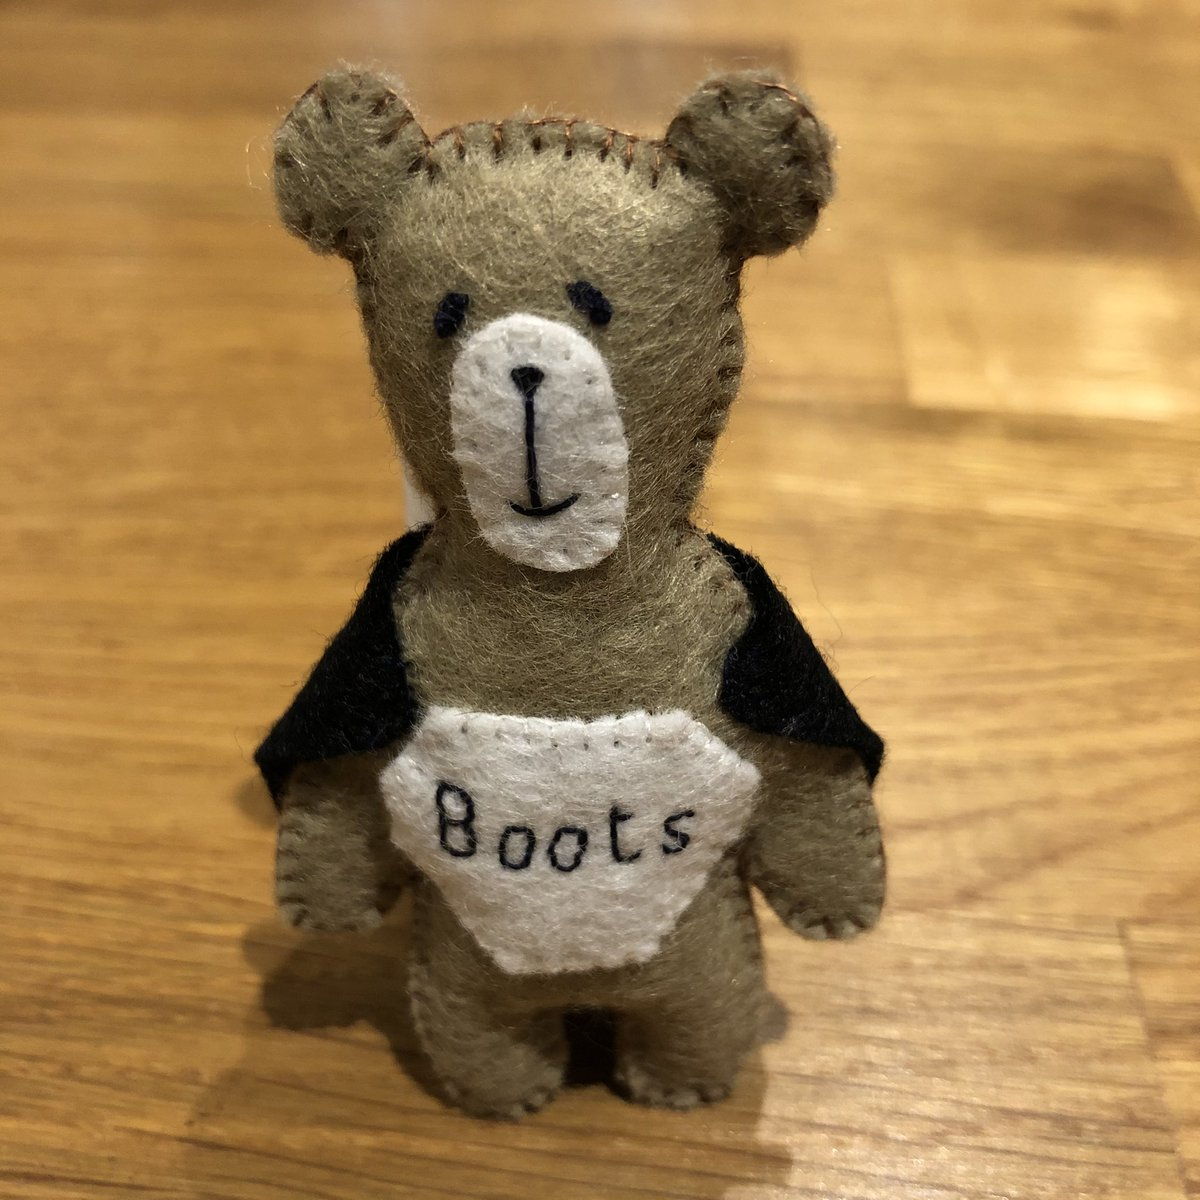 A new #pocketbear design this morning for a lady who works @BootsUK in the dispensary. #staysafe #thankyou to our new #Superheroes  pic.twitter.com/yOaOXO3Rlv